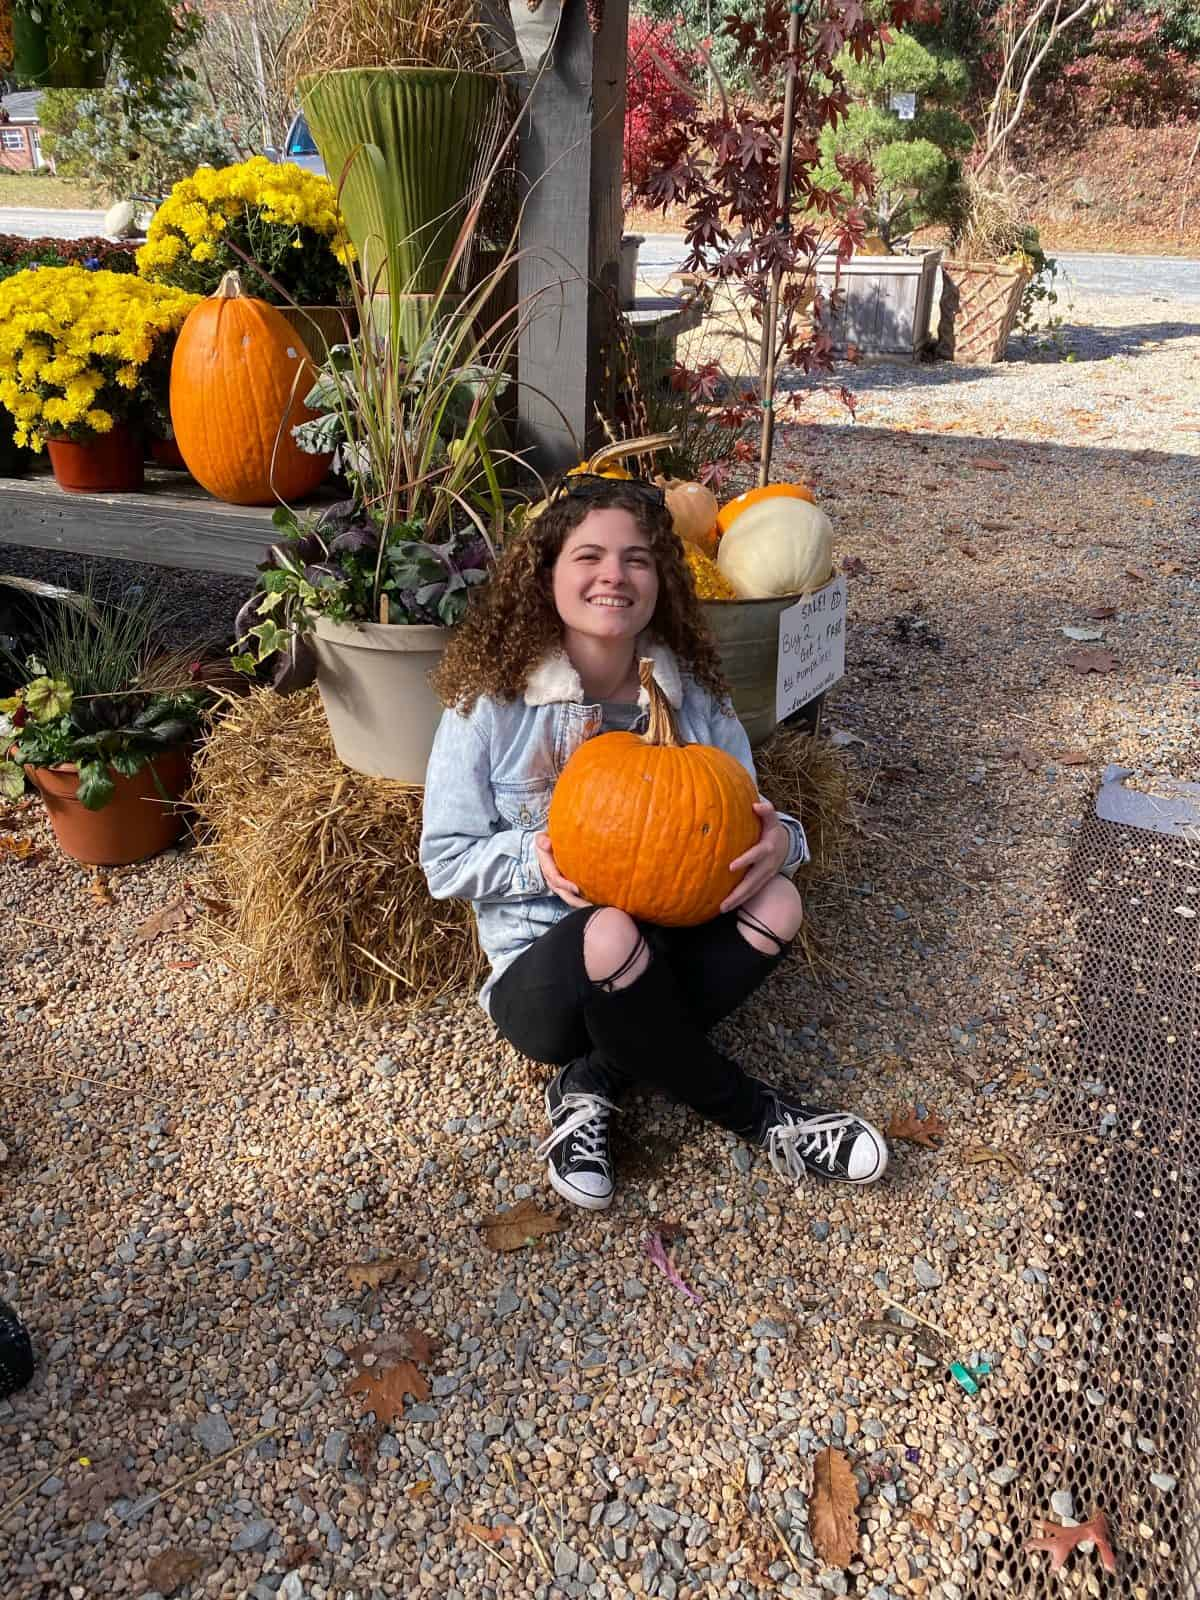 a picture of a girl holding a pumpkin